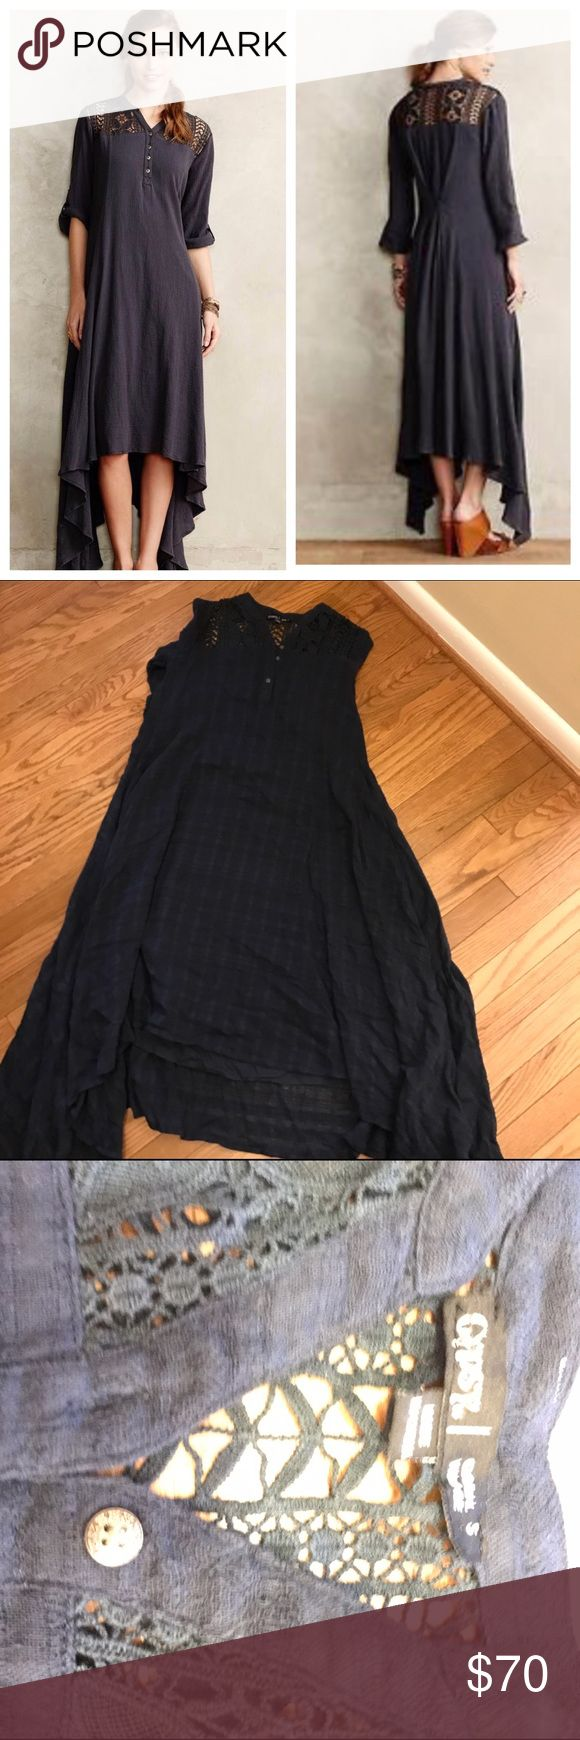 Anthropologie Tindaya Maxi, sz S By Gypsy05. In EUC, worn once. Navy blue color way for sale Anthropologie Dresses